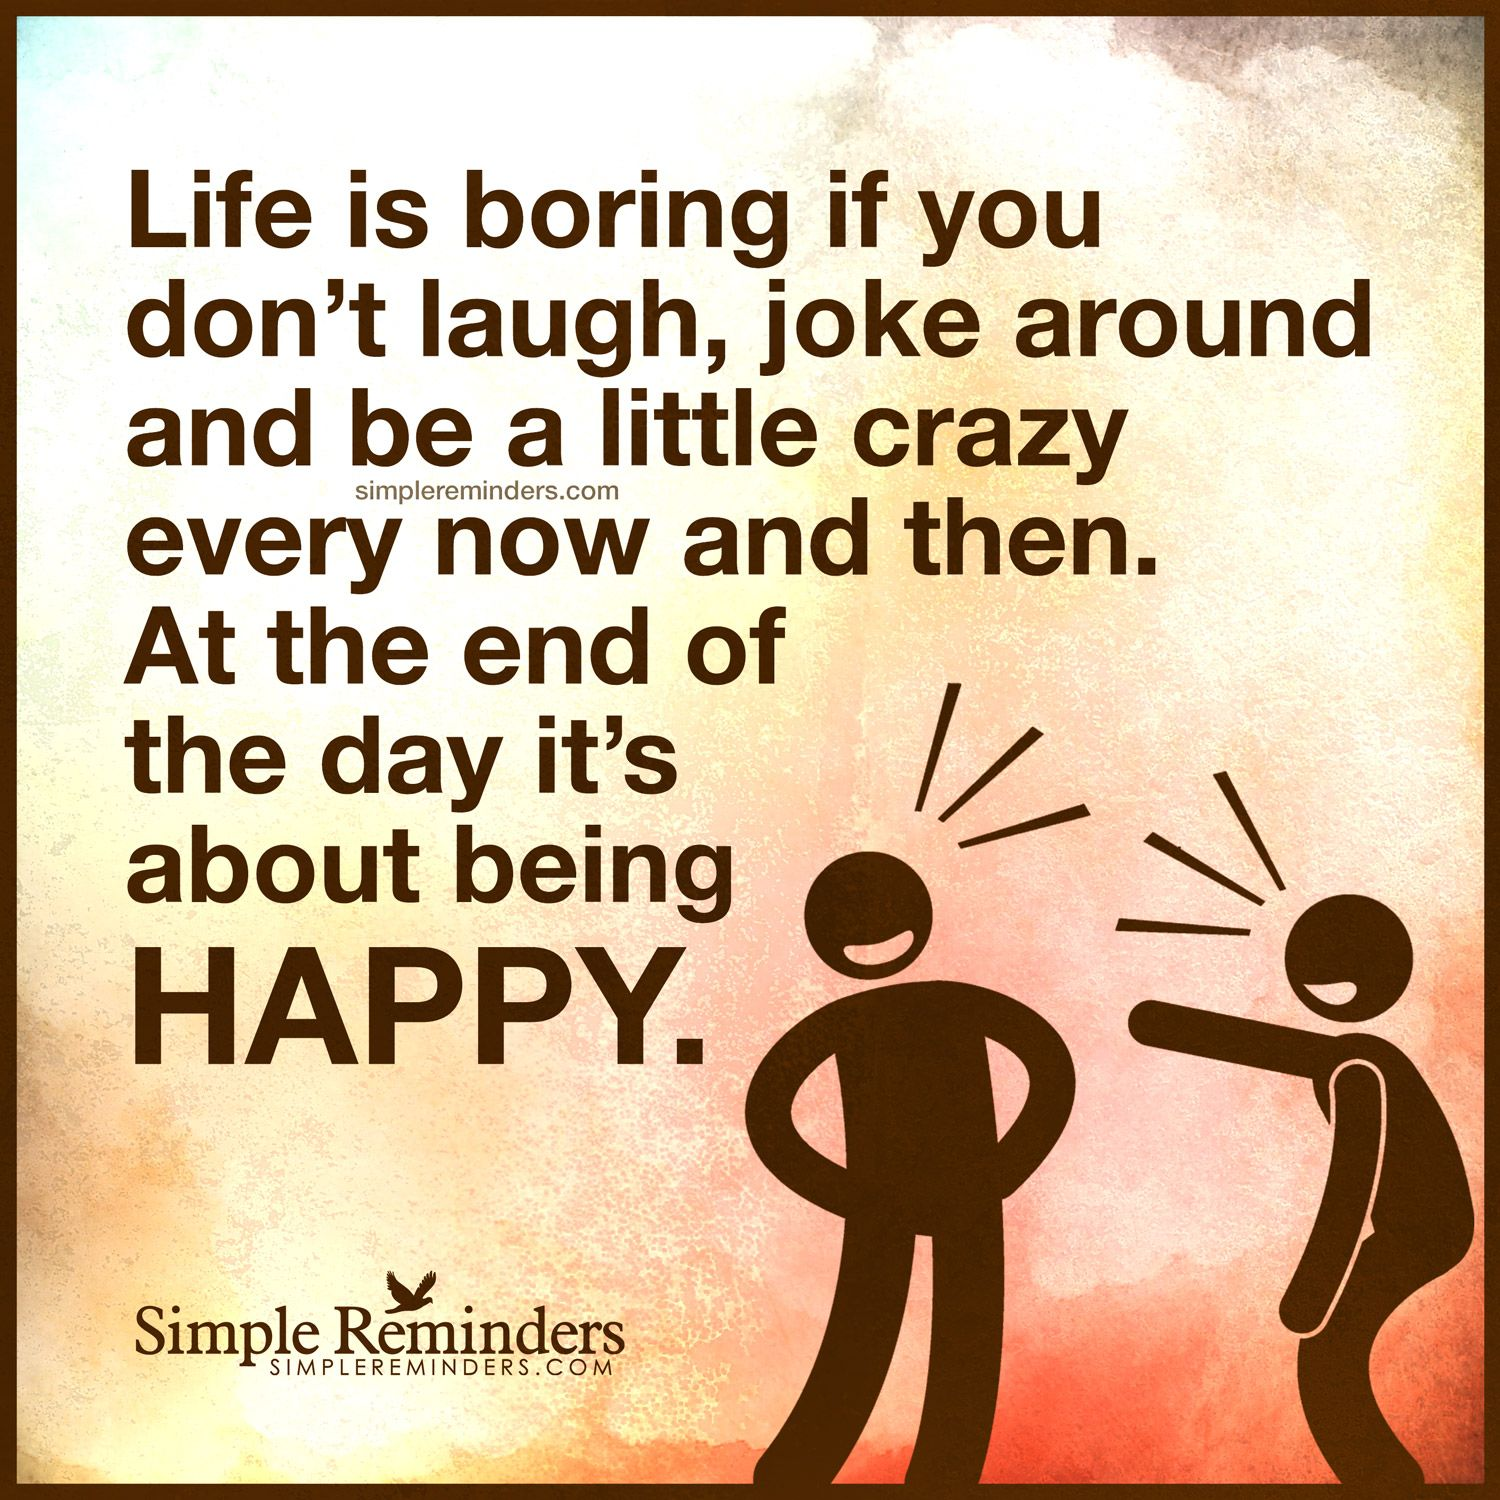 Life is about being happy Life is boring if you don't